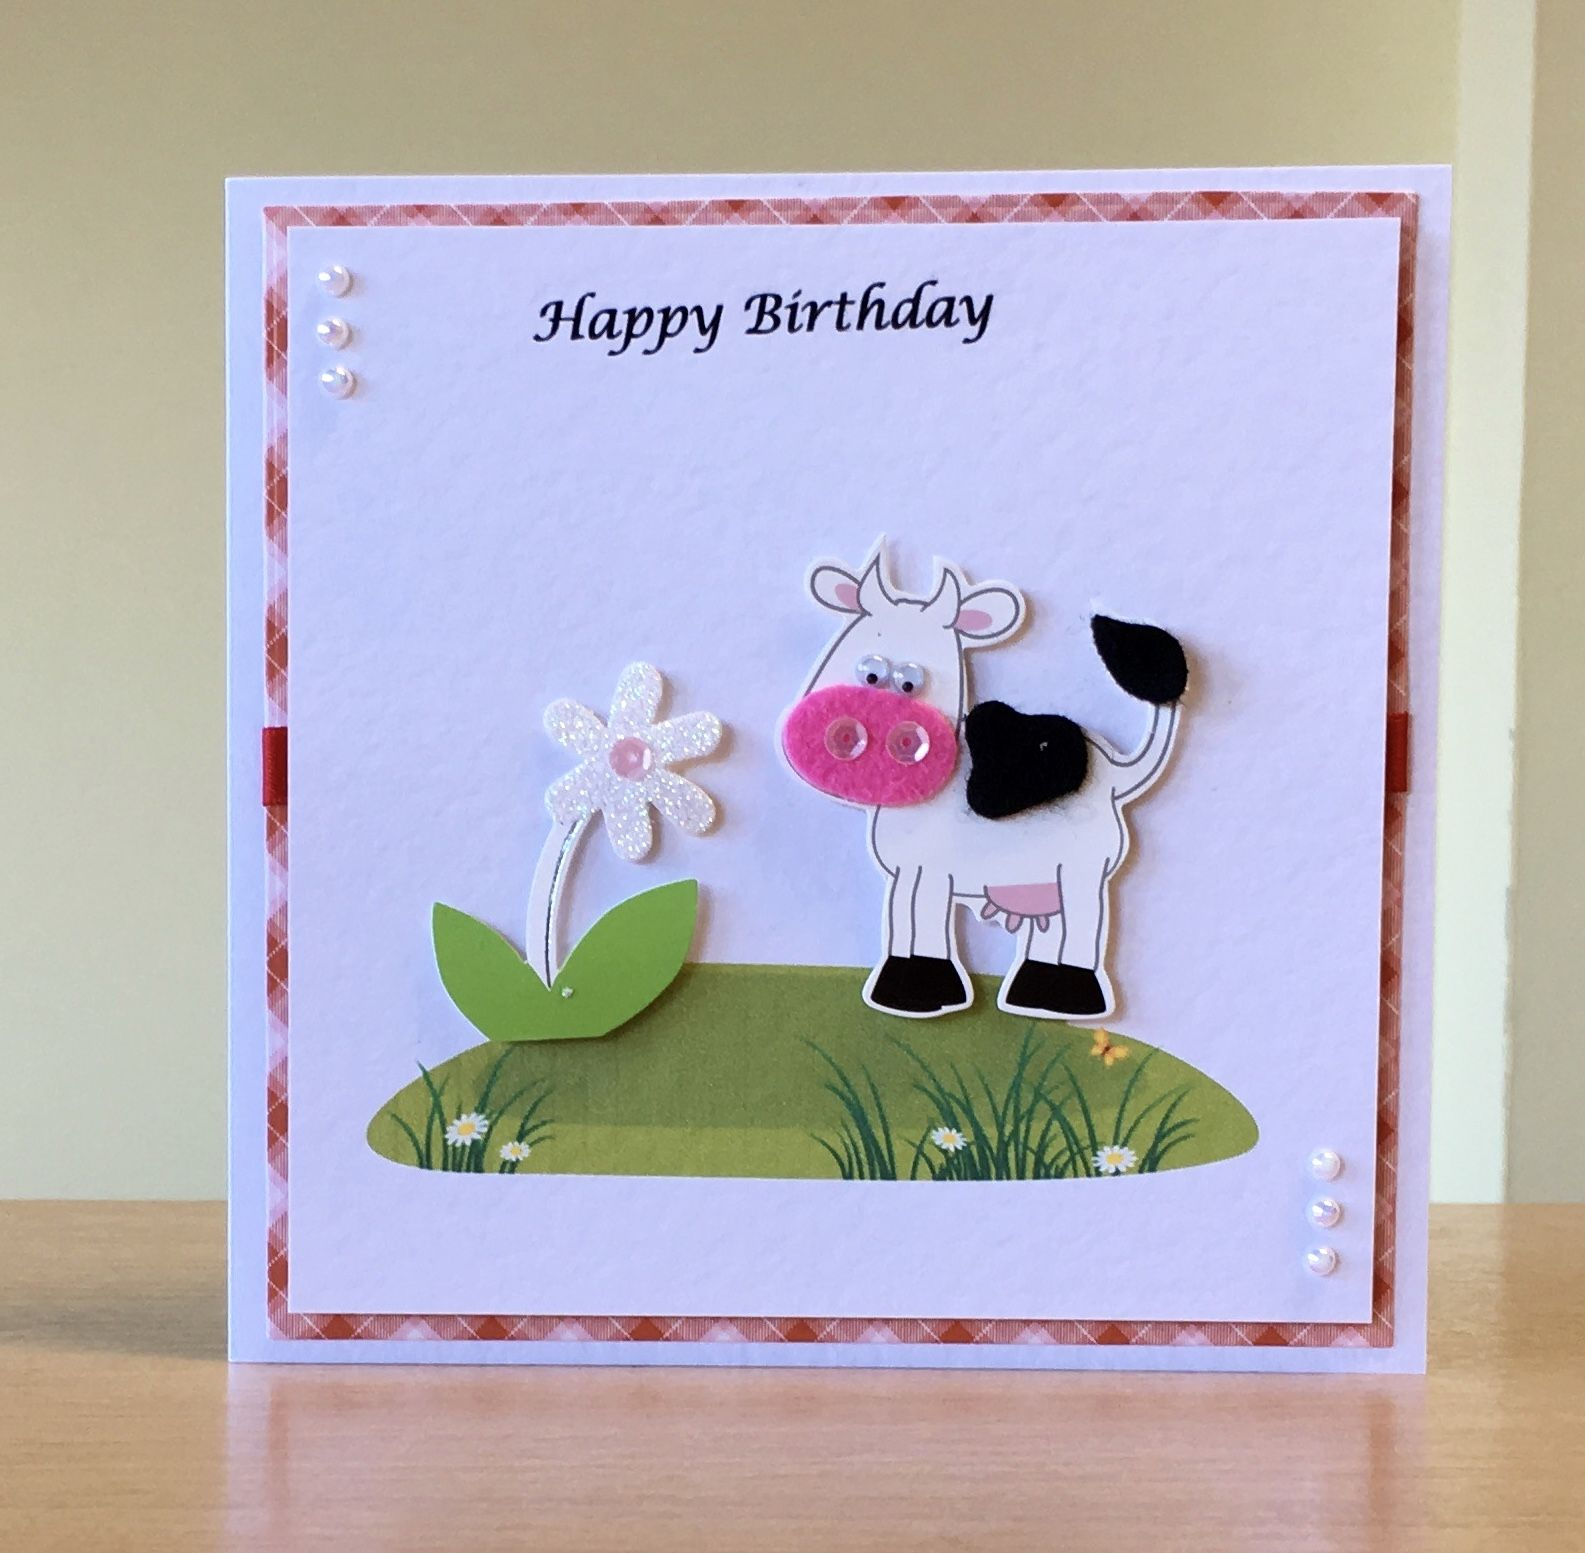 Birthday Card Handmade Cow Embellishment For More Of My Cards Please Visit Craftycardstudio On Etsy Com Handmade Craft Cards Cards Handmade Birthday Cards